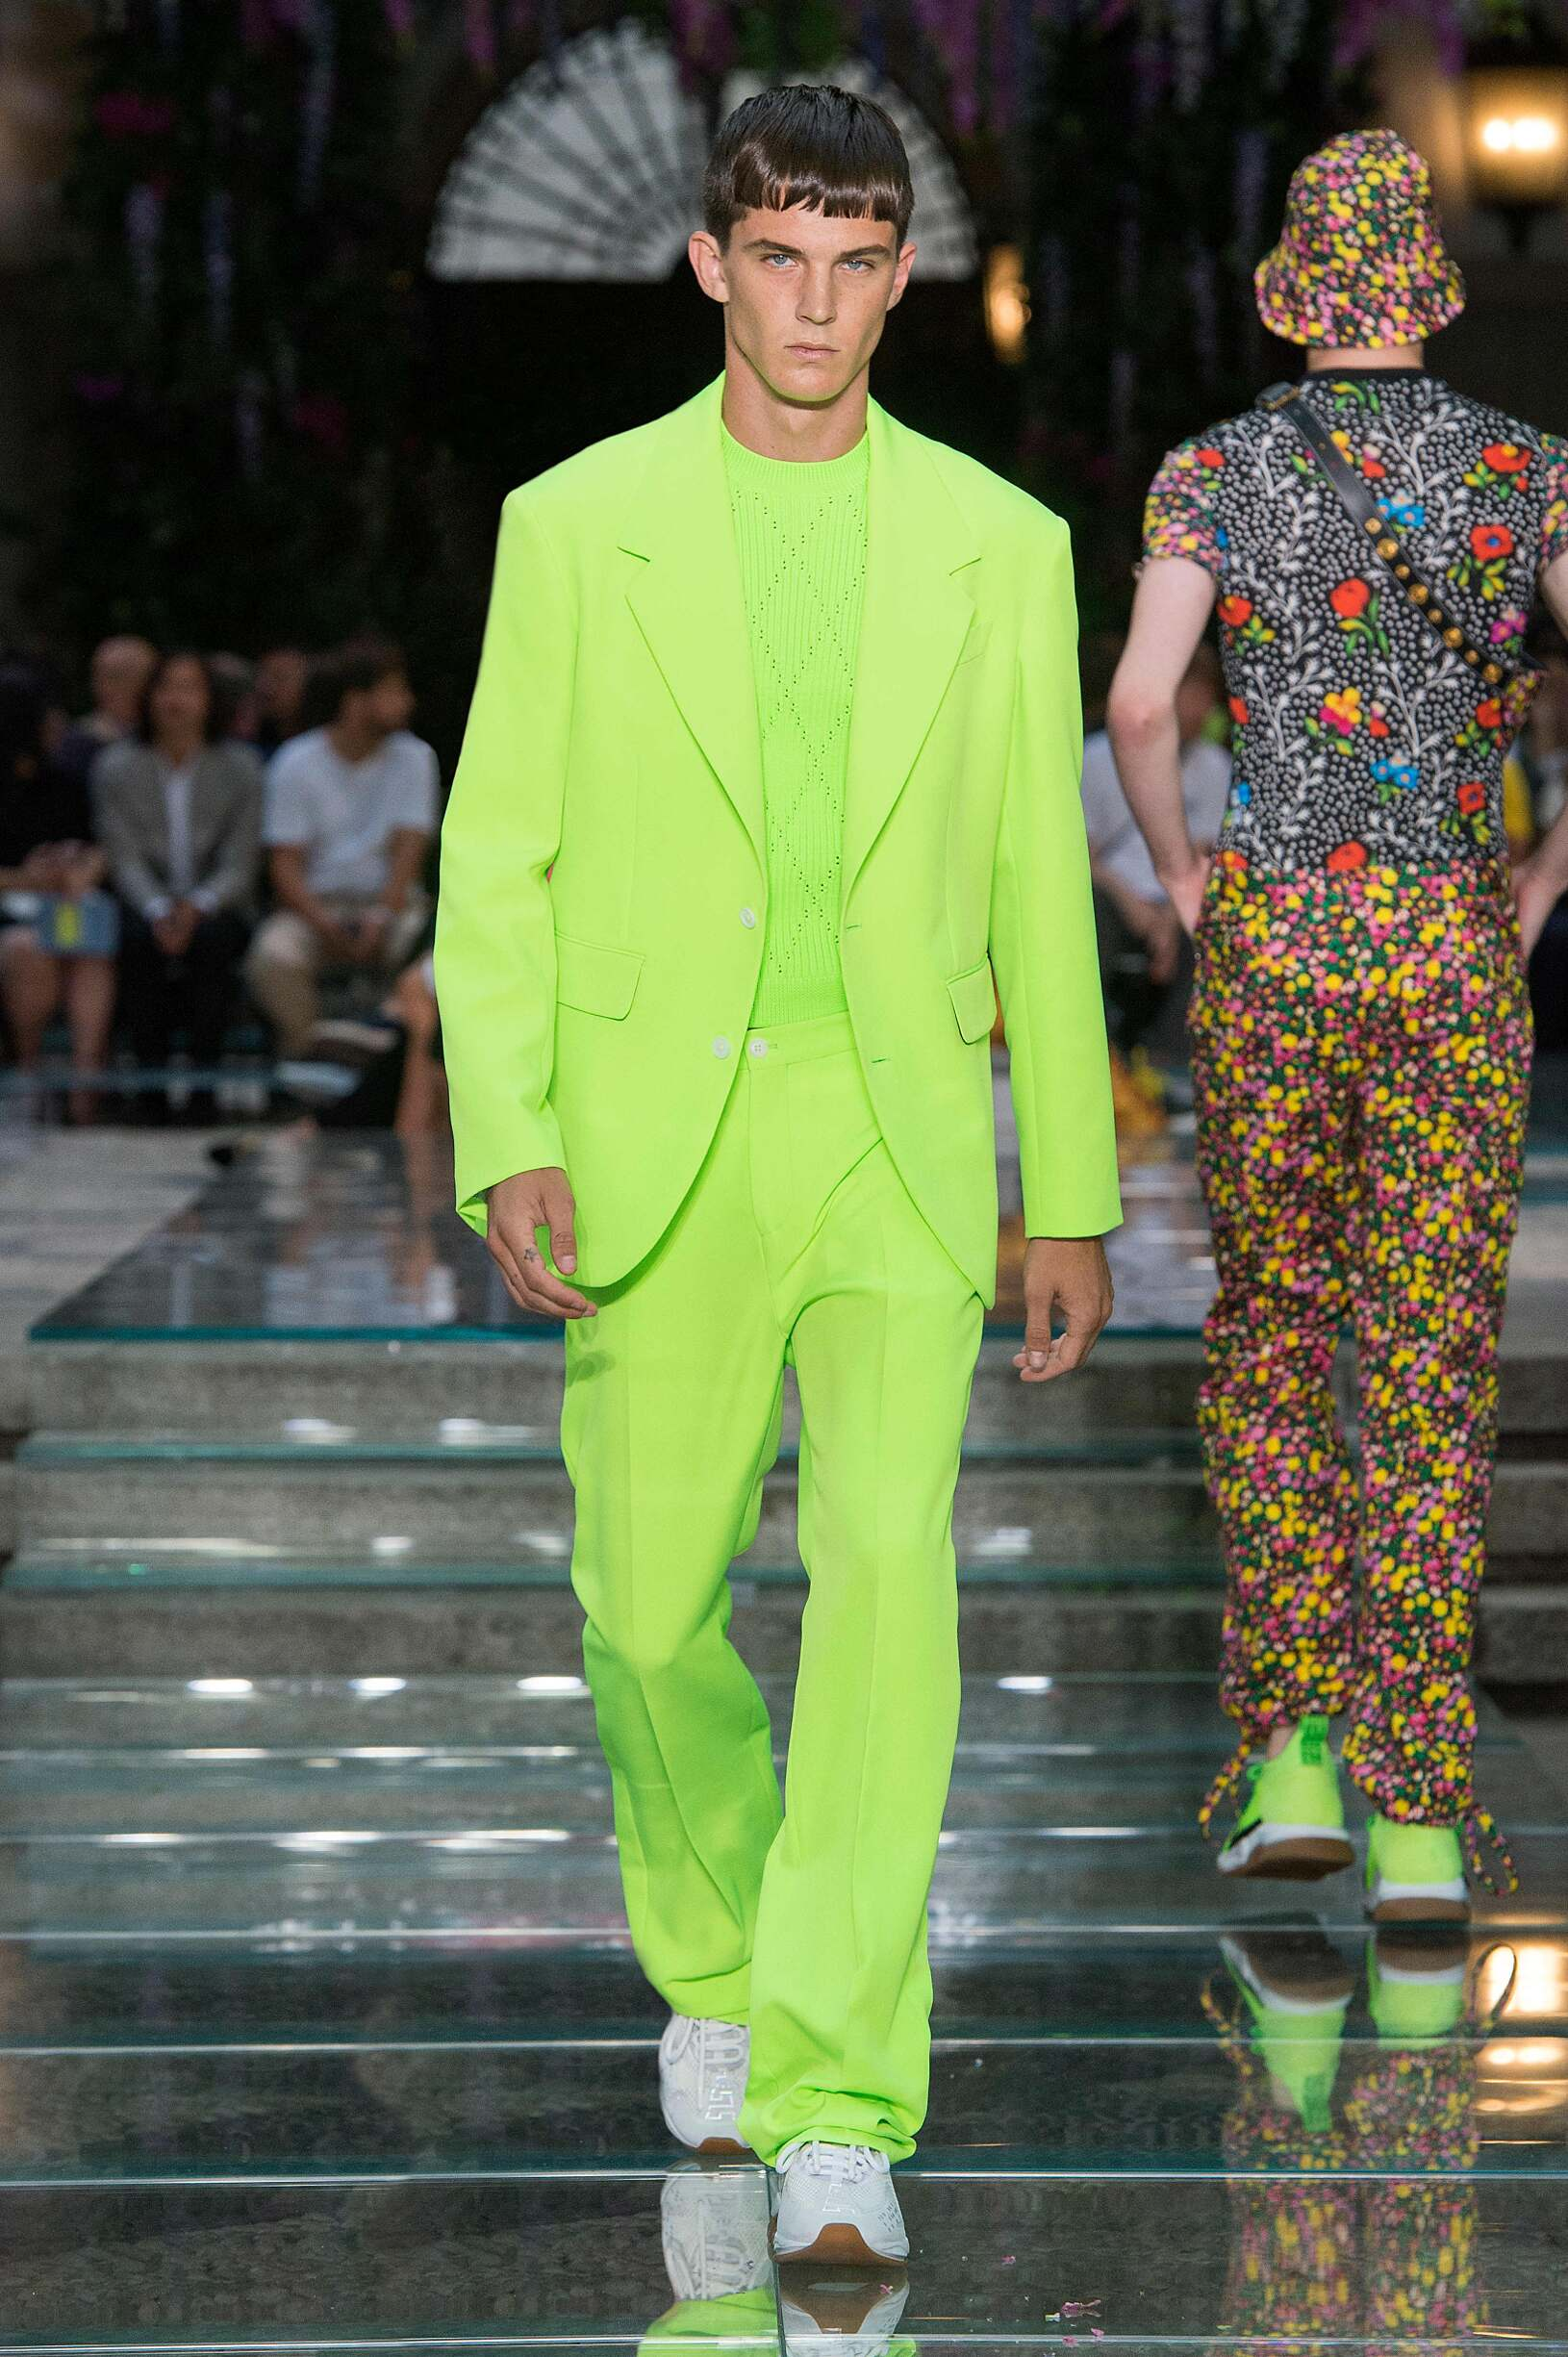 VERSACE SPRING SUMMER 2019 MEN'S COLLECTION | The Skinny Beep